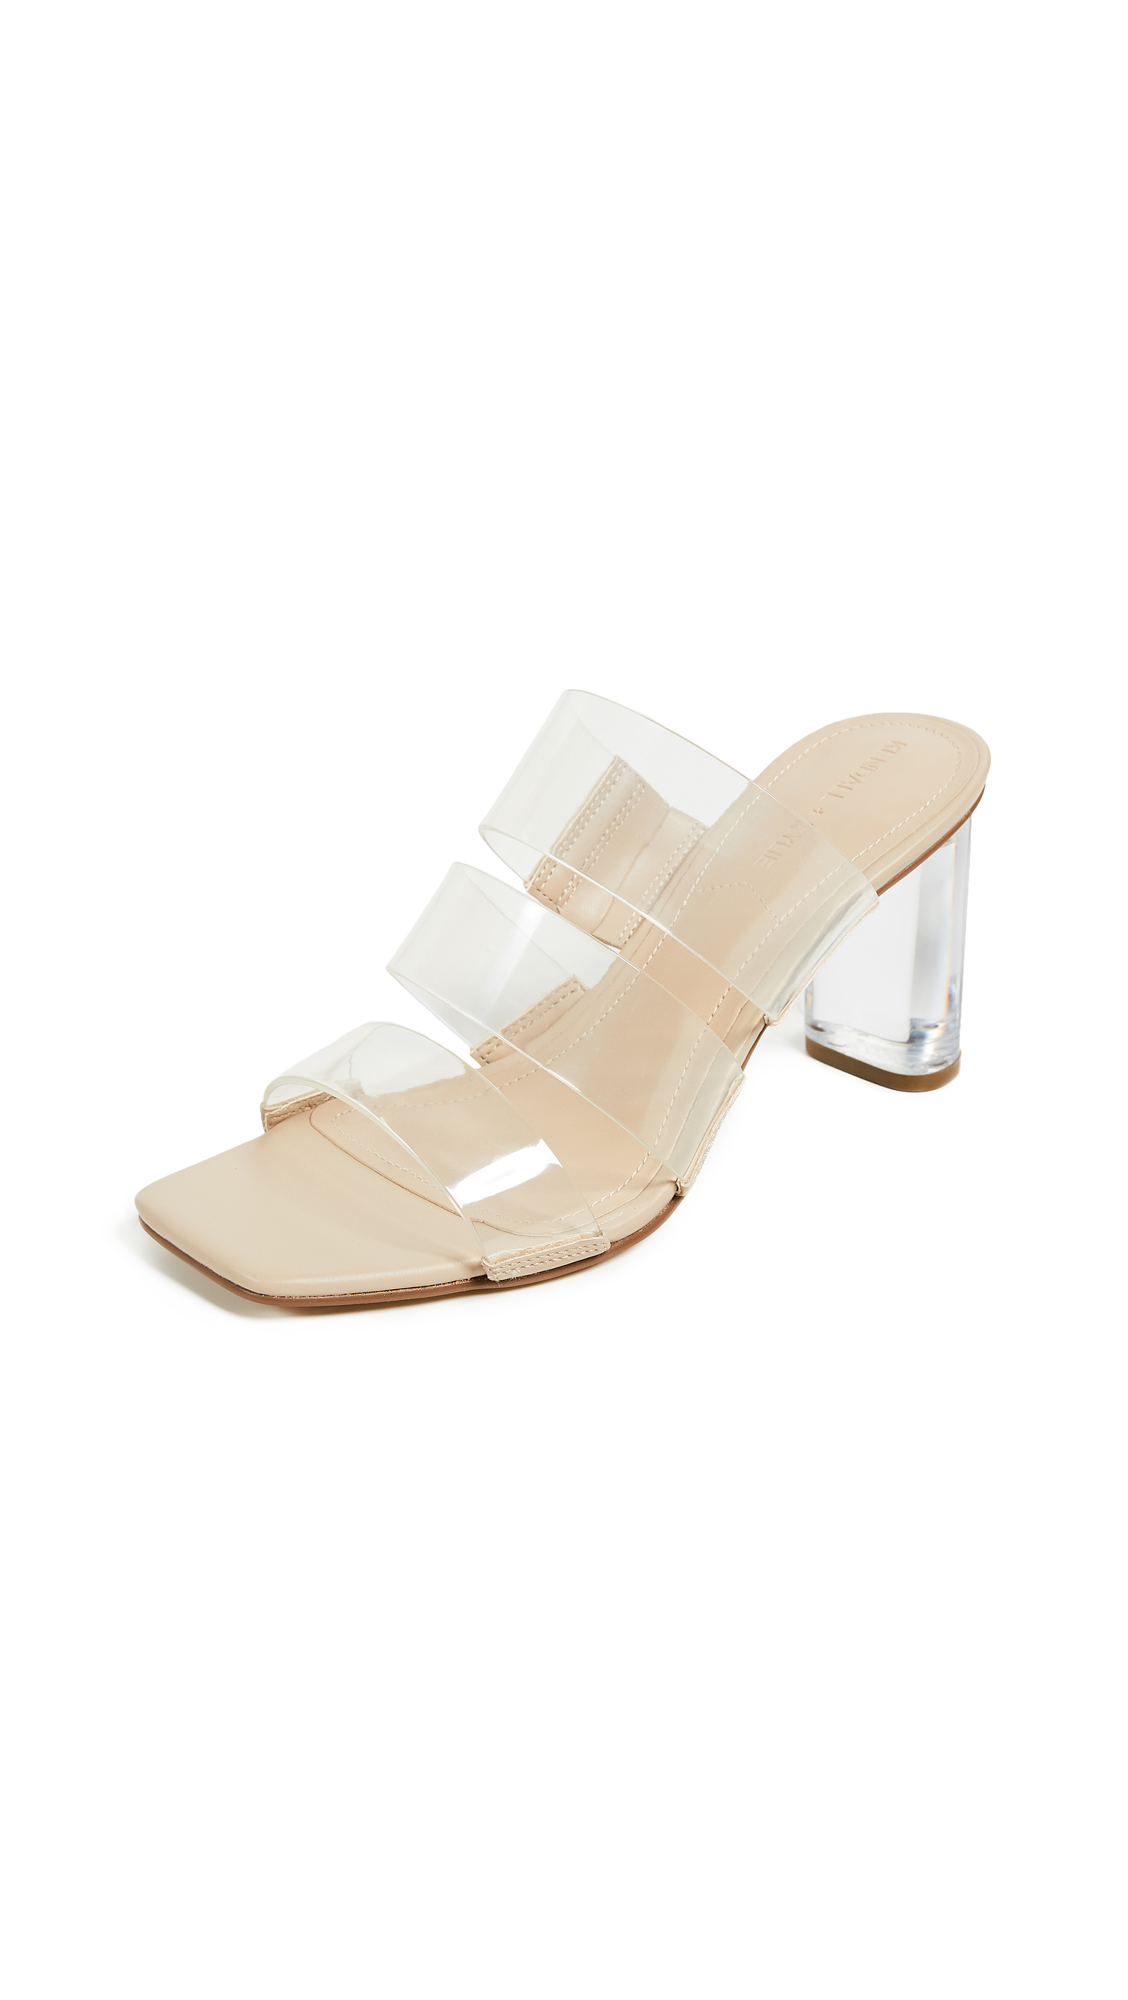 KENDALL + KYLIE Leila Sandals - Clear